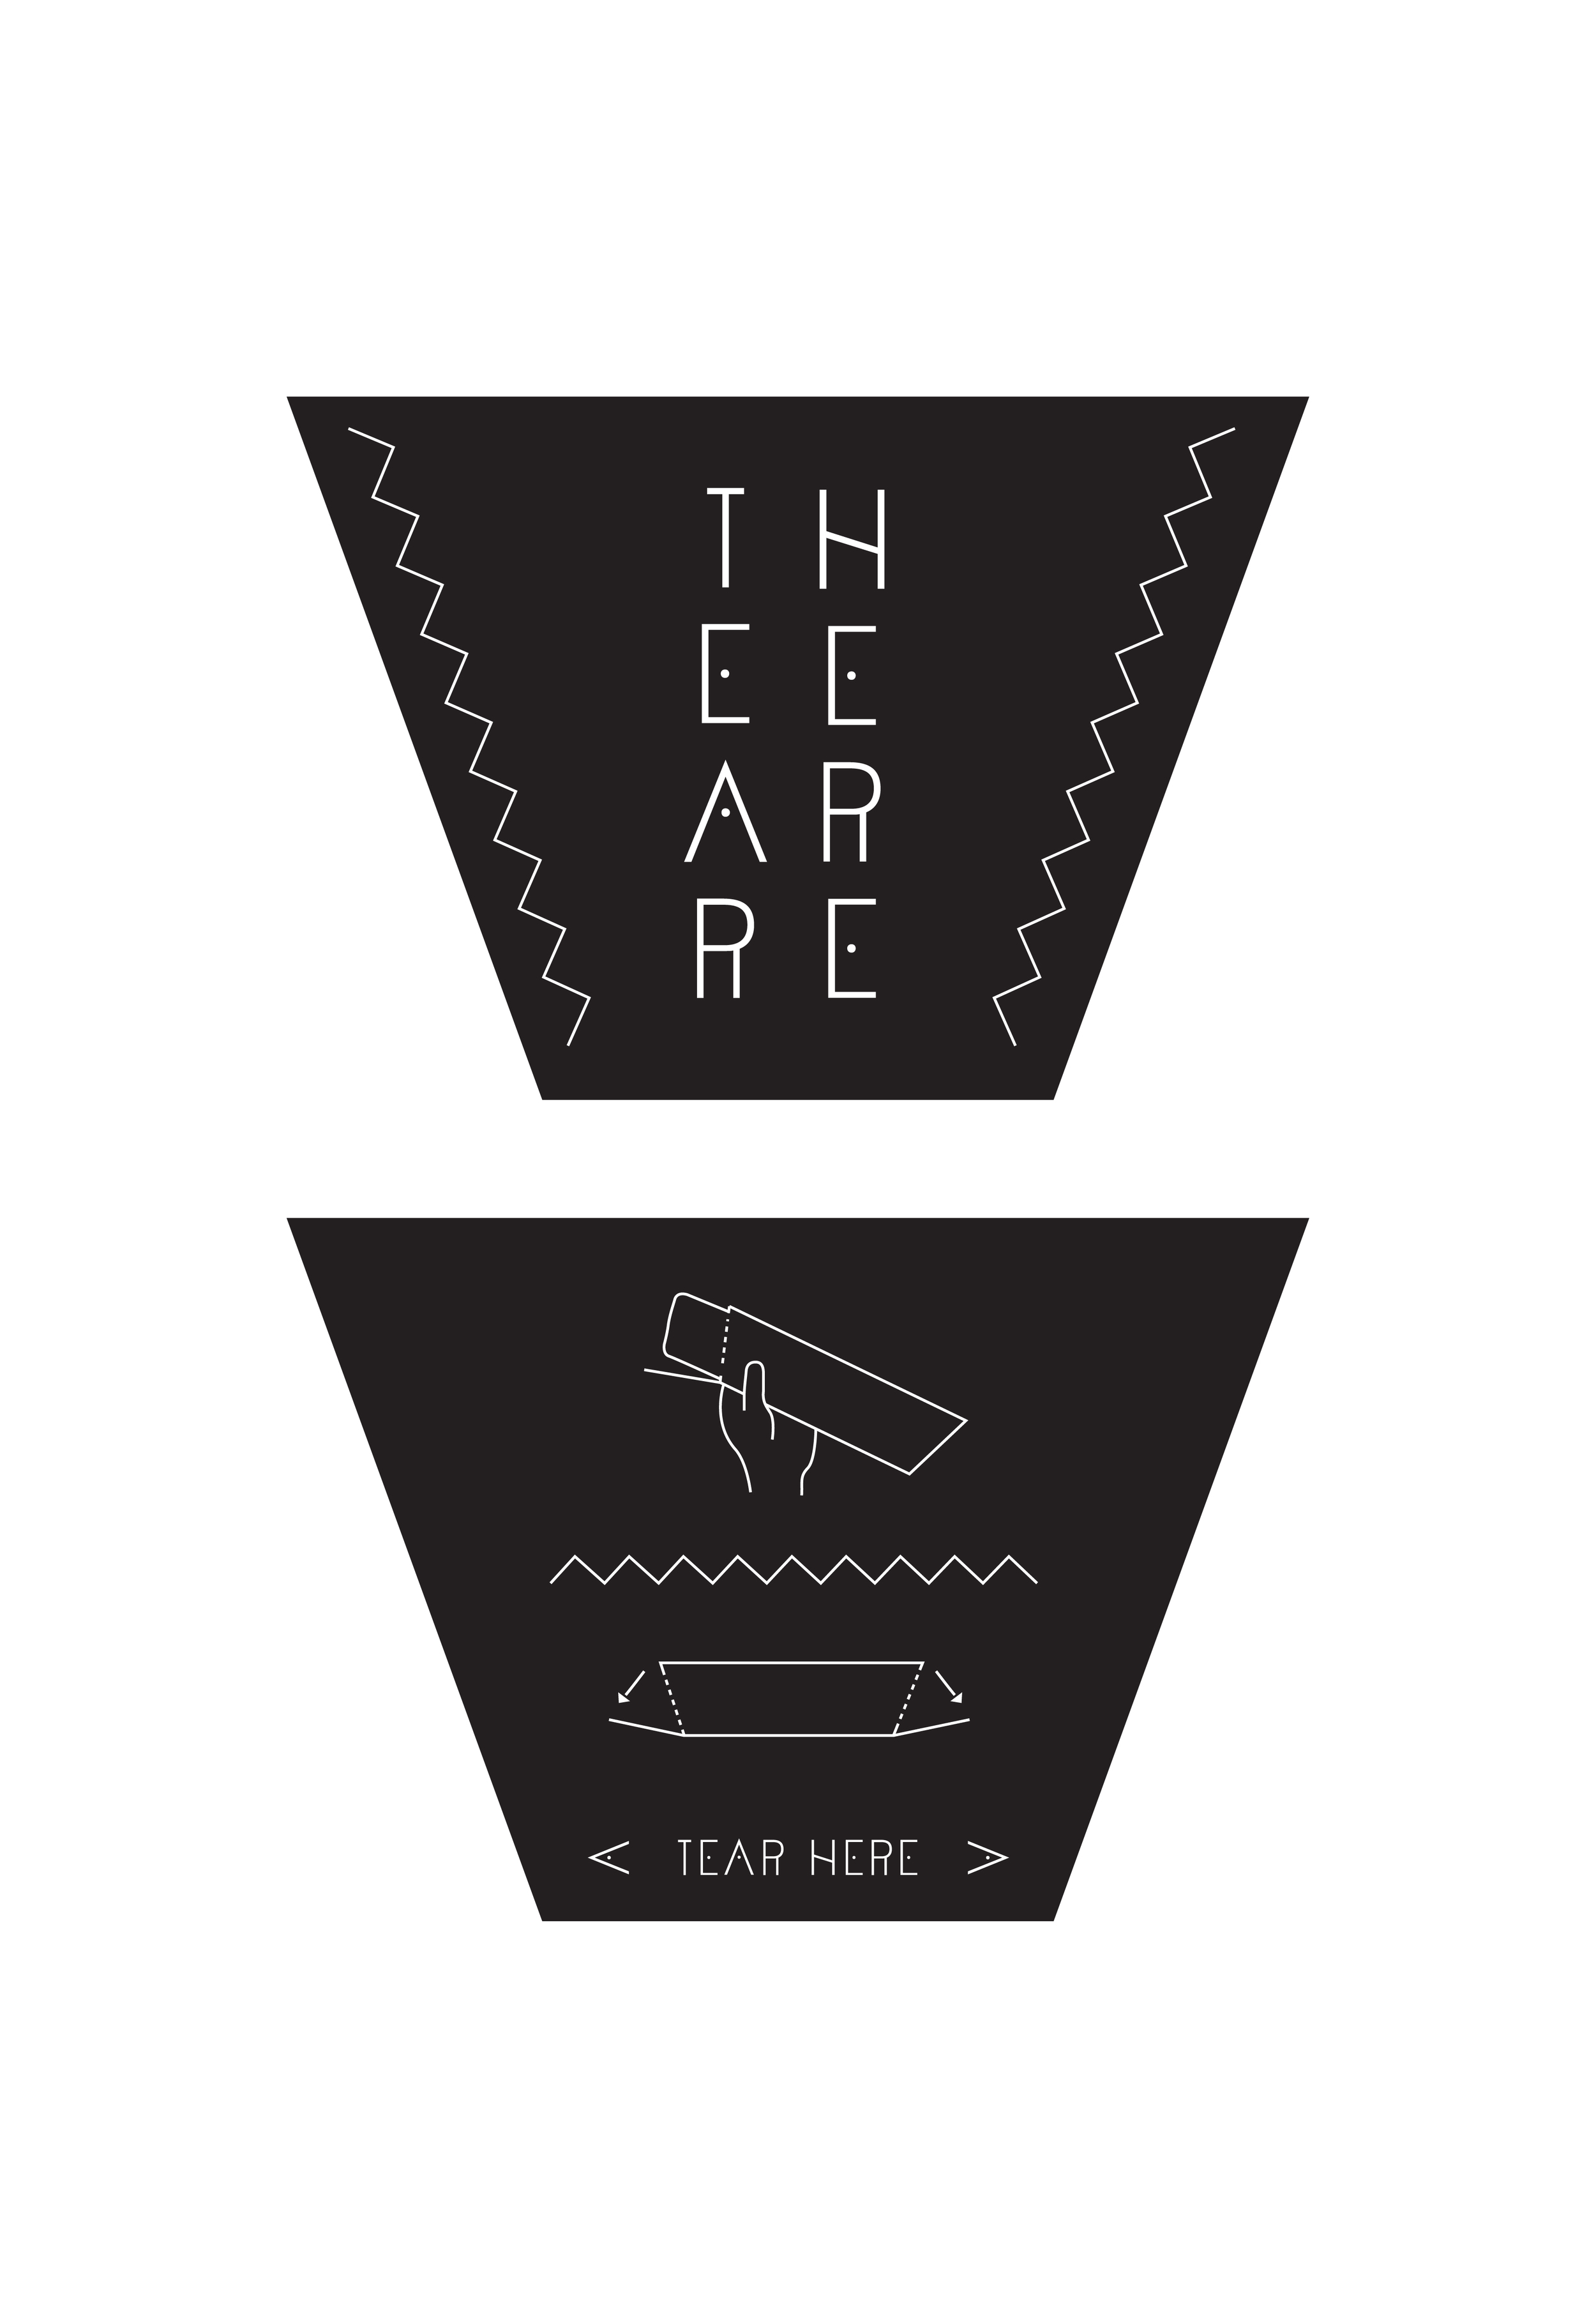 View on the sides of the packaging design for Palæo's wraps showing instructions